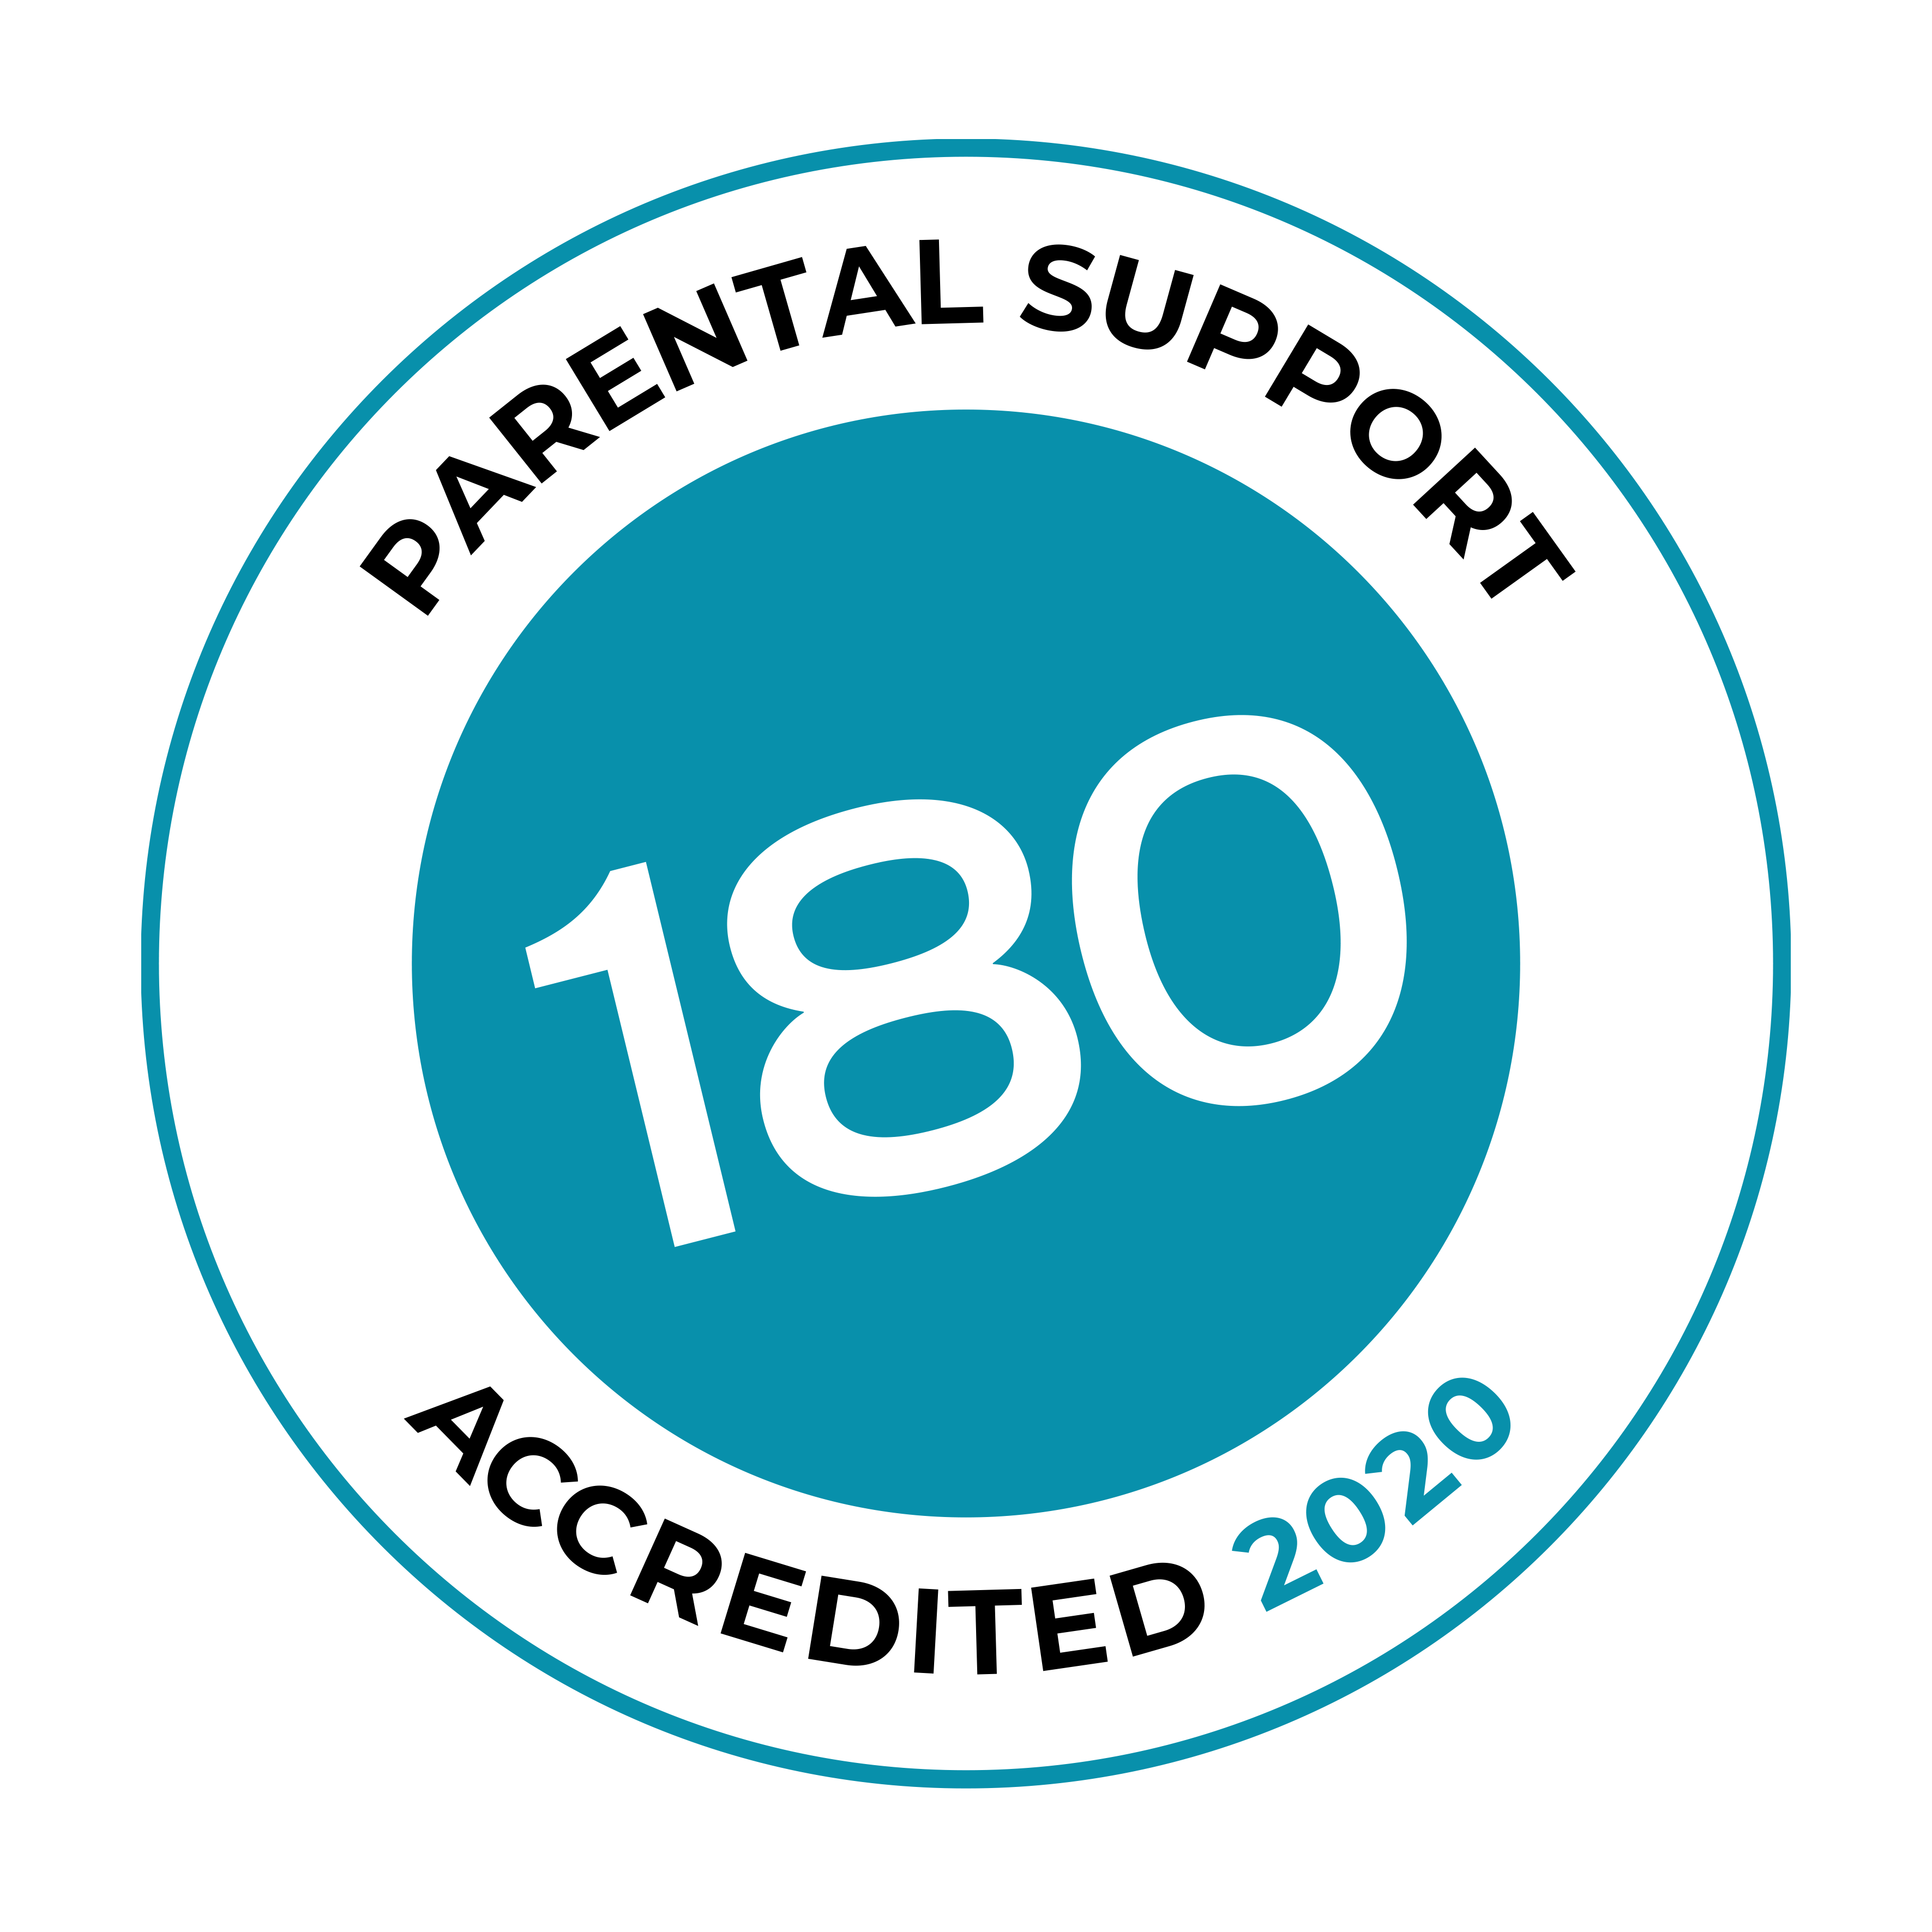 Parental Support Accreditation Badge